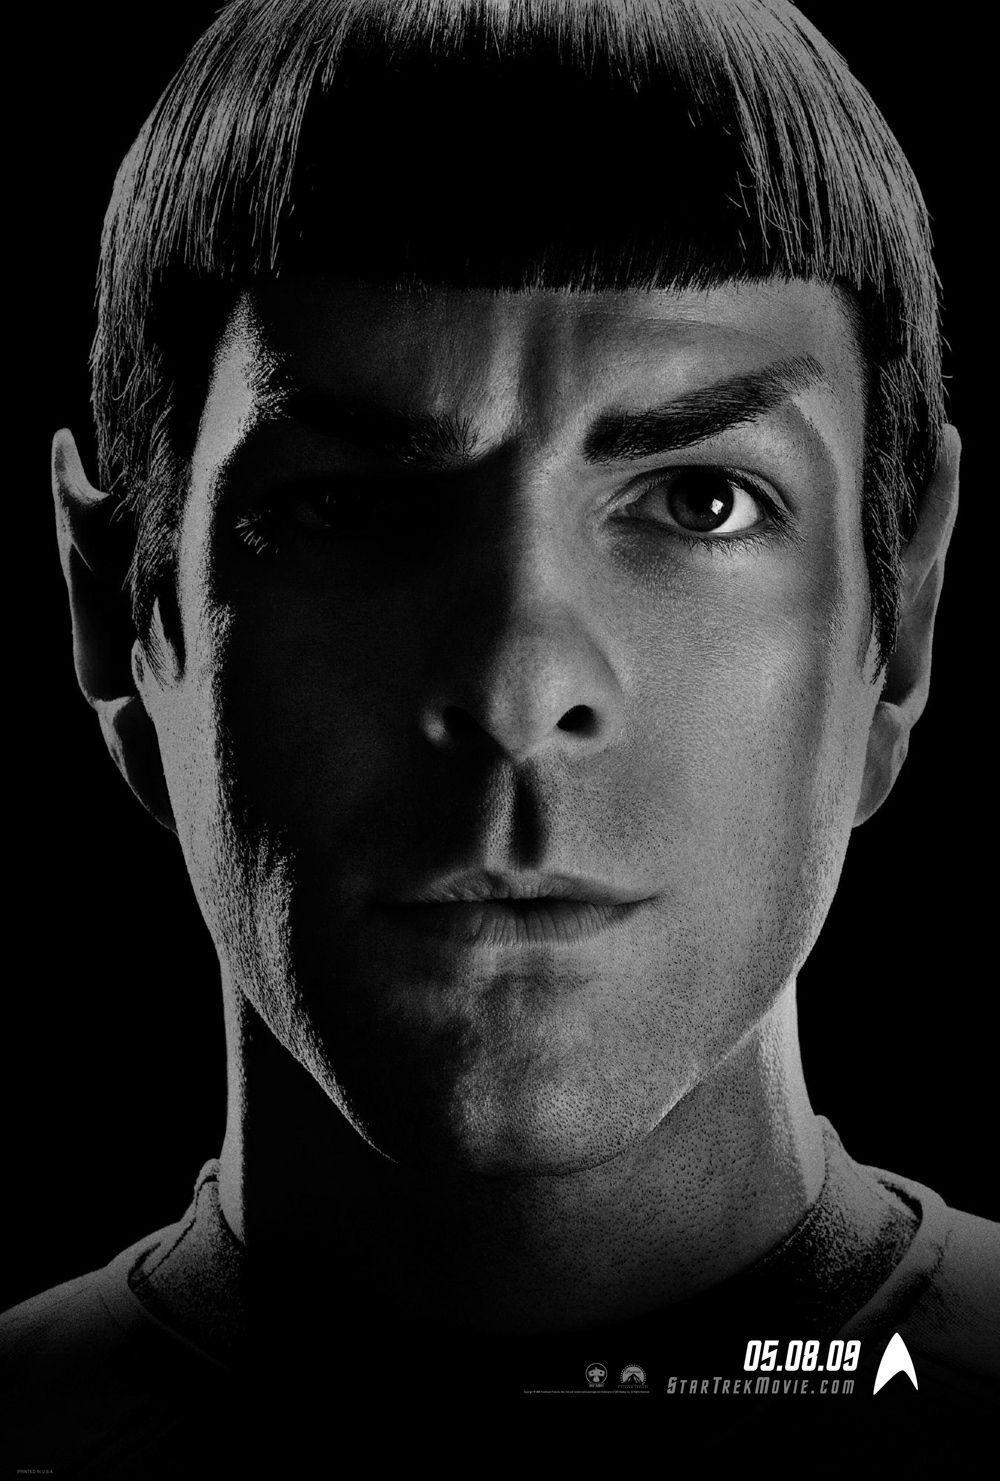 Star Trek  11 - Inizio - Begin - Zachary Quinto - Spock